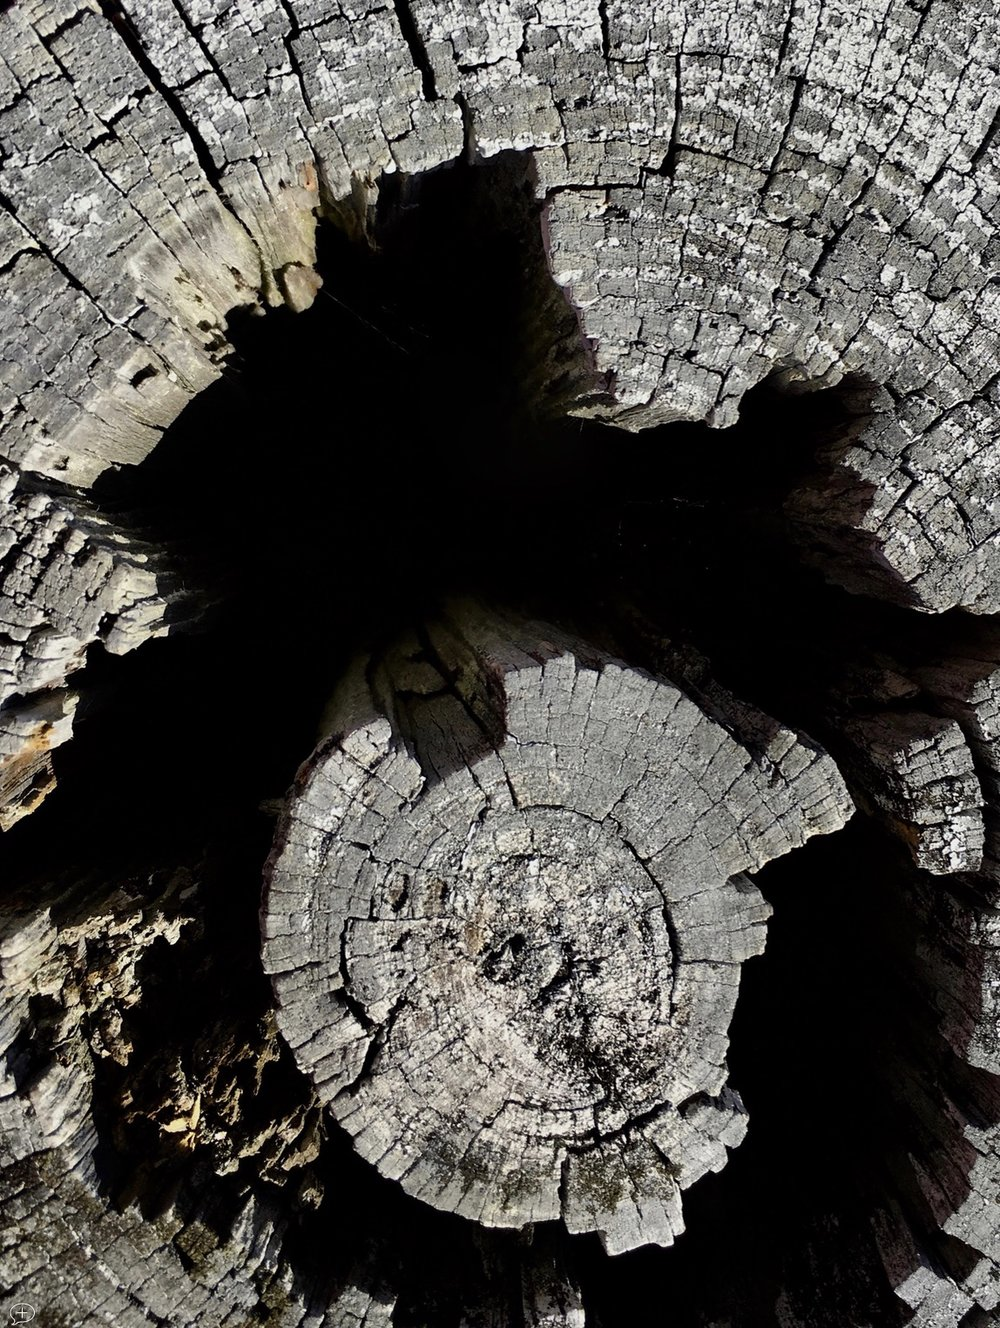 """21.  Looking into the Abyss , iPhone 6S, 2016. Saratoga Battlefield, NY. (Canvas Photo, 40"""" x 30,""""). When I tell people this photo is only looking down into a stump at the Saratoga Battlefield, they often don't believe me. But that's what it is. Of course, what it looks like to a viewer is quite another thing! What does it remind you of?  ©2016  Sean Walmsley"""